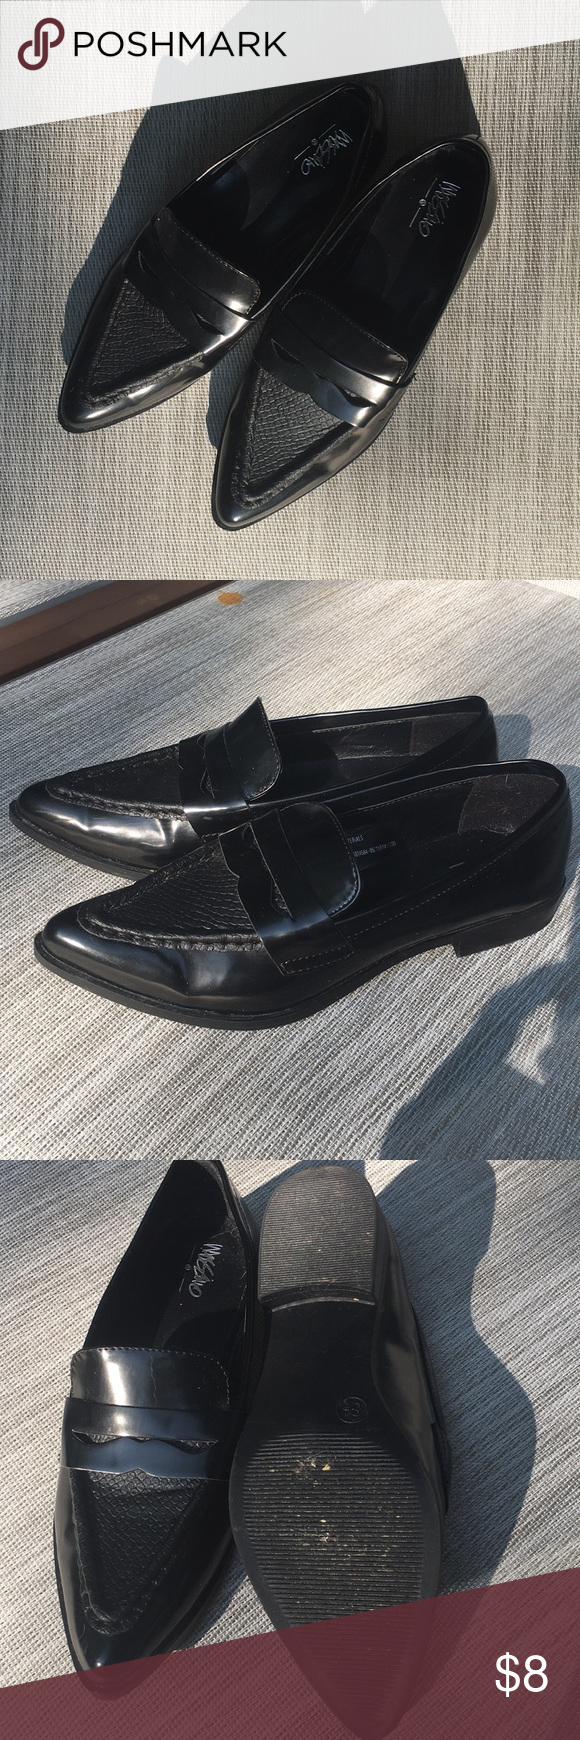 5f5fc21e286 Shiny black loafers Black penny loafers. Man made materials Mossimo Supply  Co. Shoes Flats   Loafers